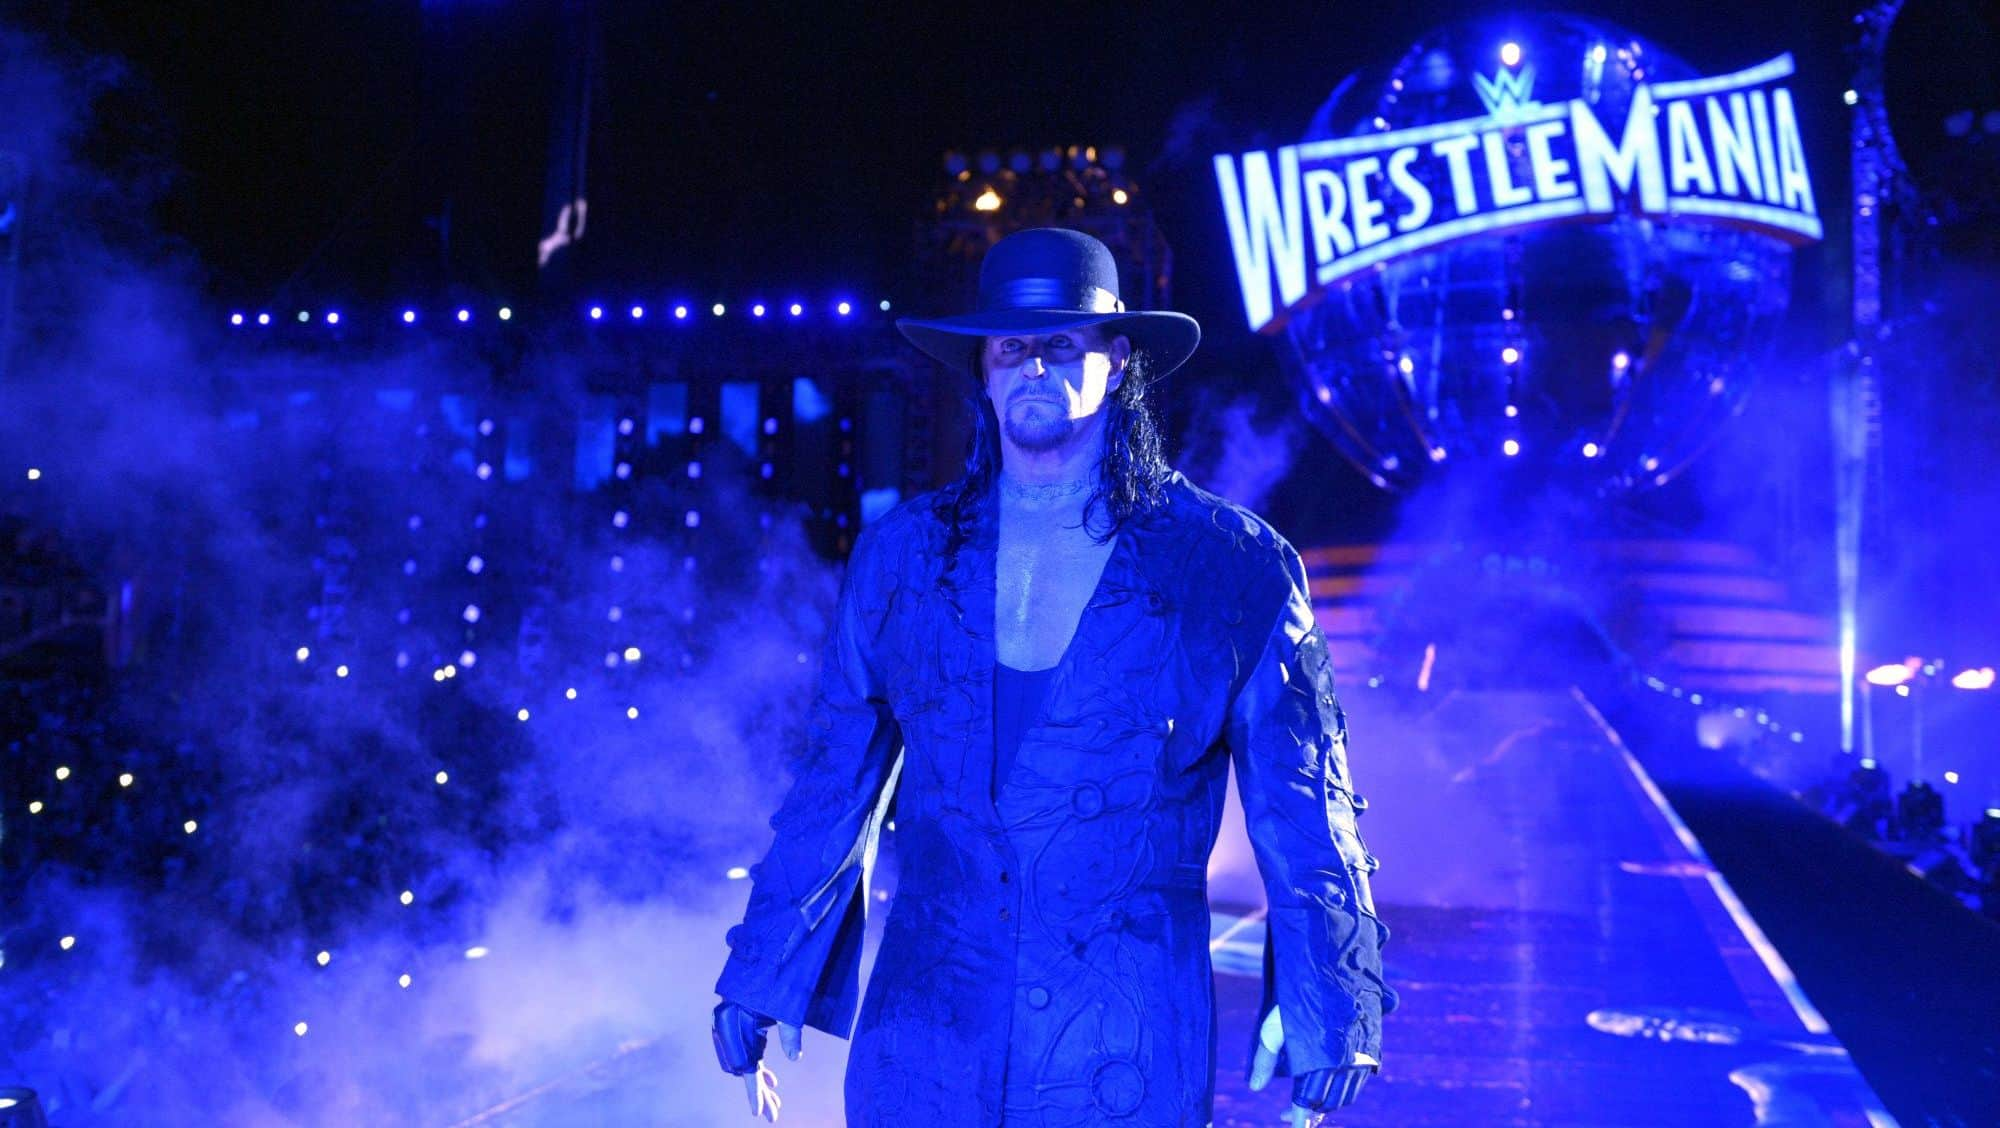 Undertaker makes his entrance at WrestleMania 33. Three years before this, his WrestleMania streak came to an end.